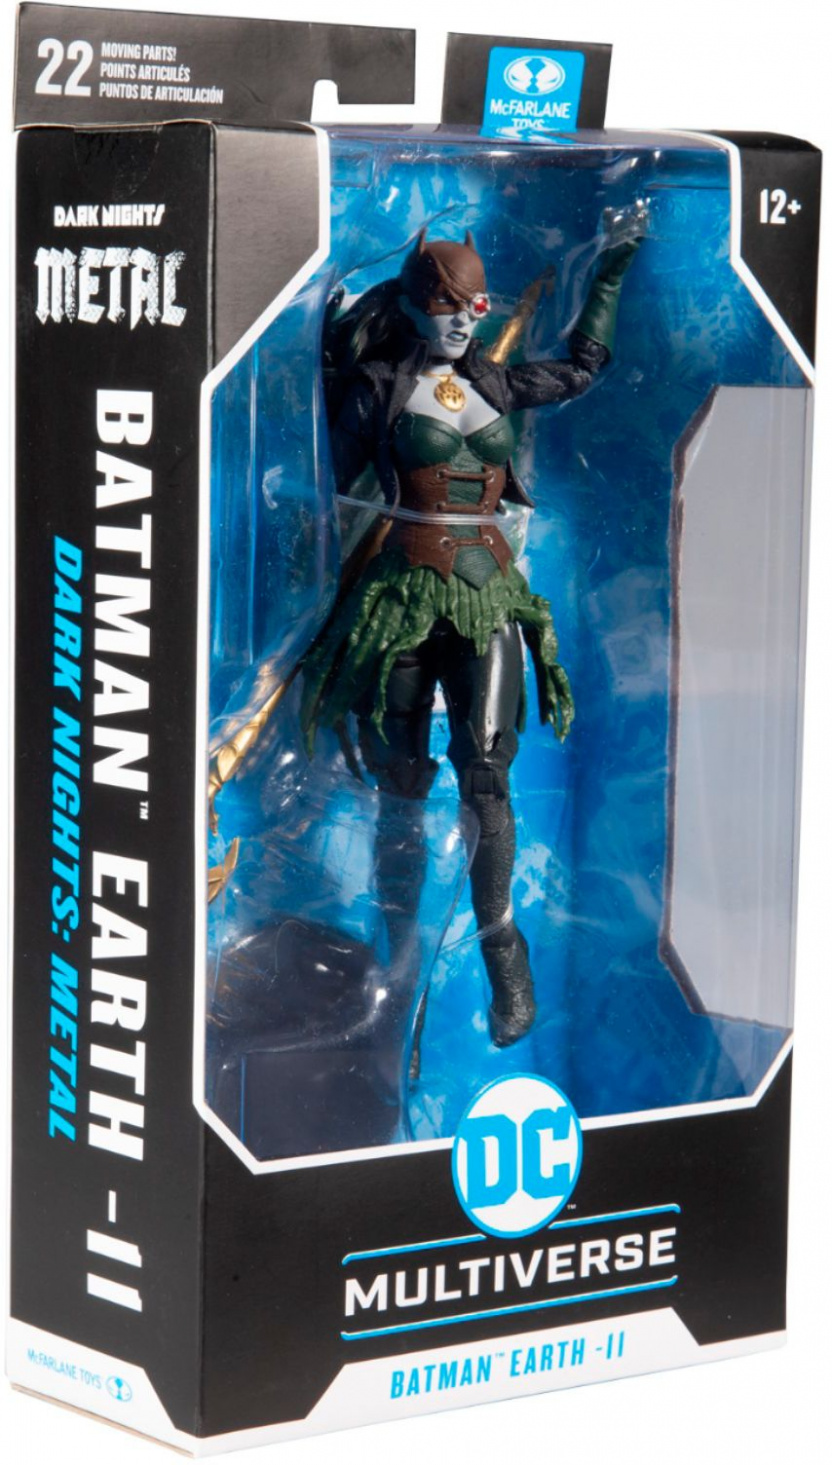 McFarlane DC Multiverse The Drowned 7-Inch Action Figure box left corner